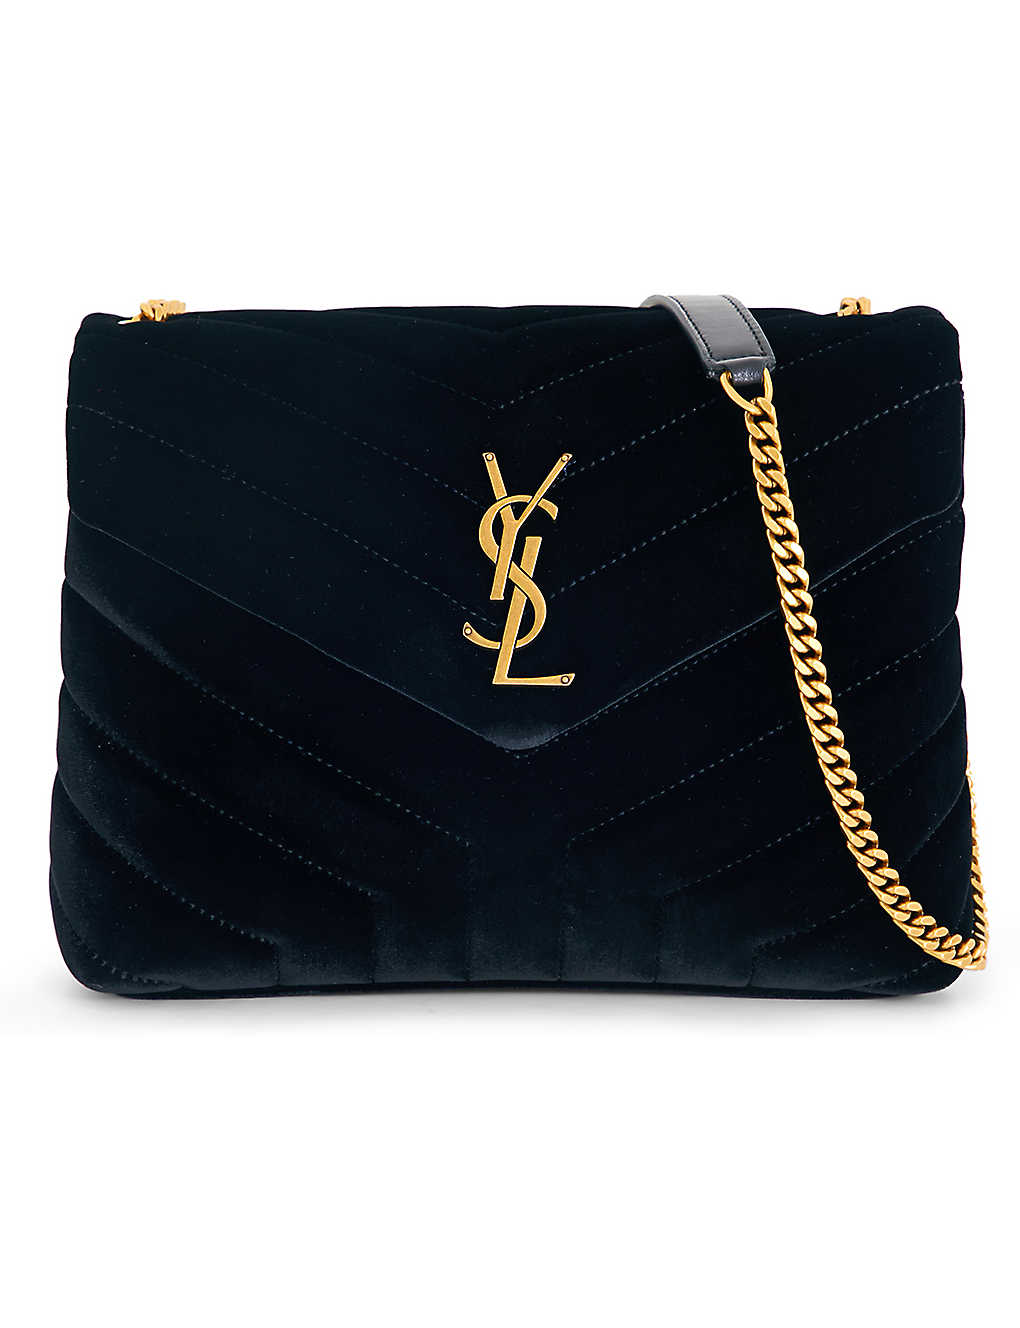 9b1b64928d5 SAINT LAURENT - Lou Lou velvet shoulder bag | Selfridges.com